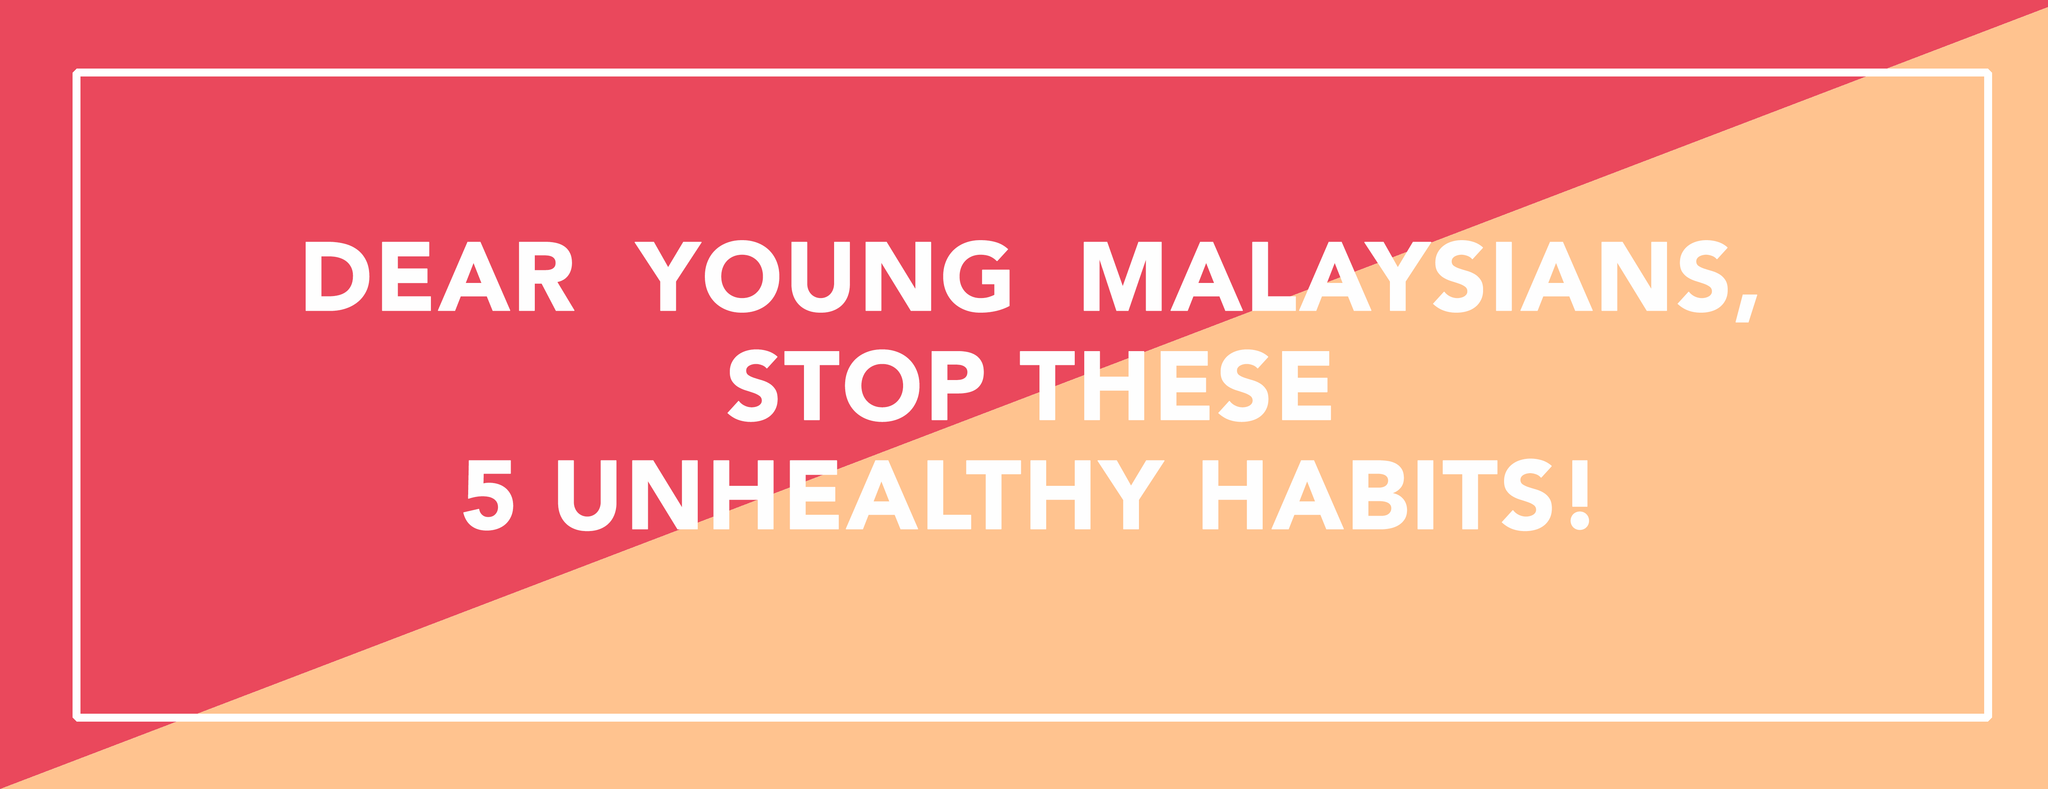 Dear Young Malaysians, Stop These 5 Unhealthy Habits!